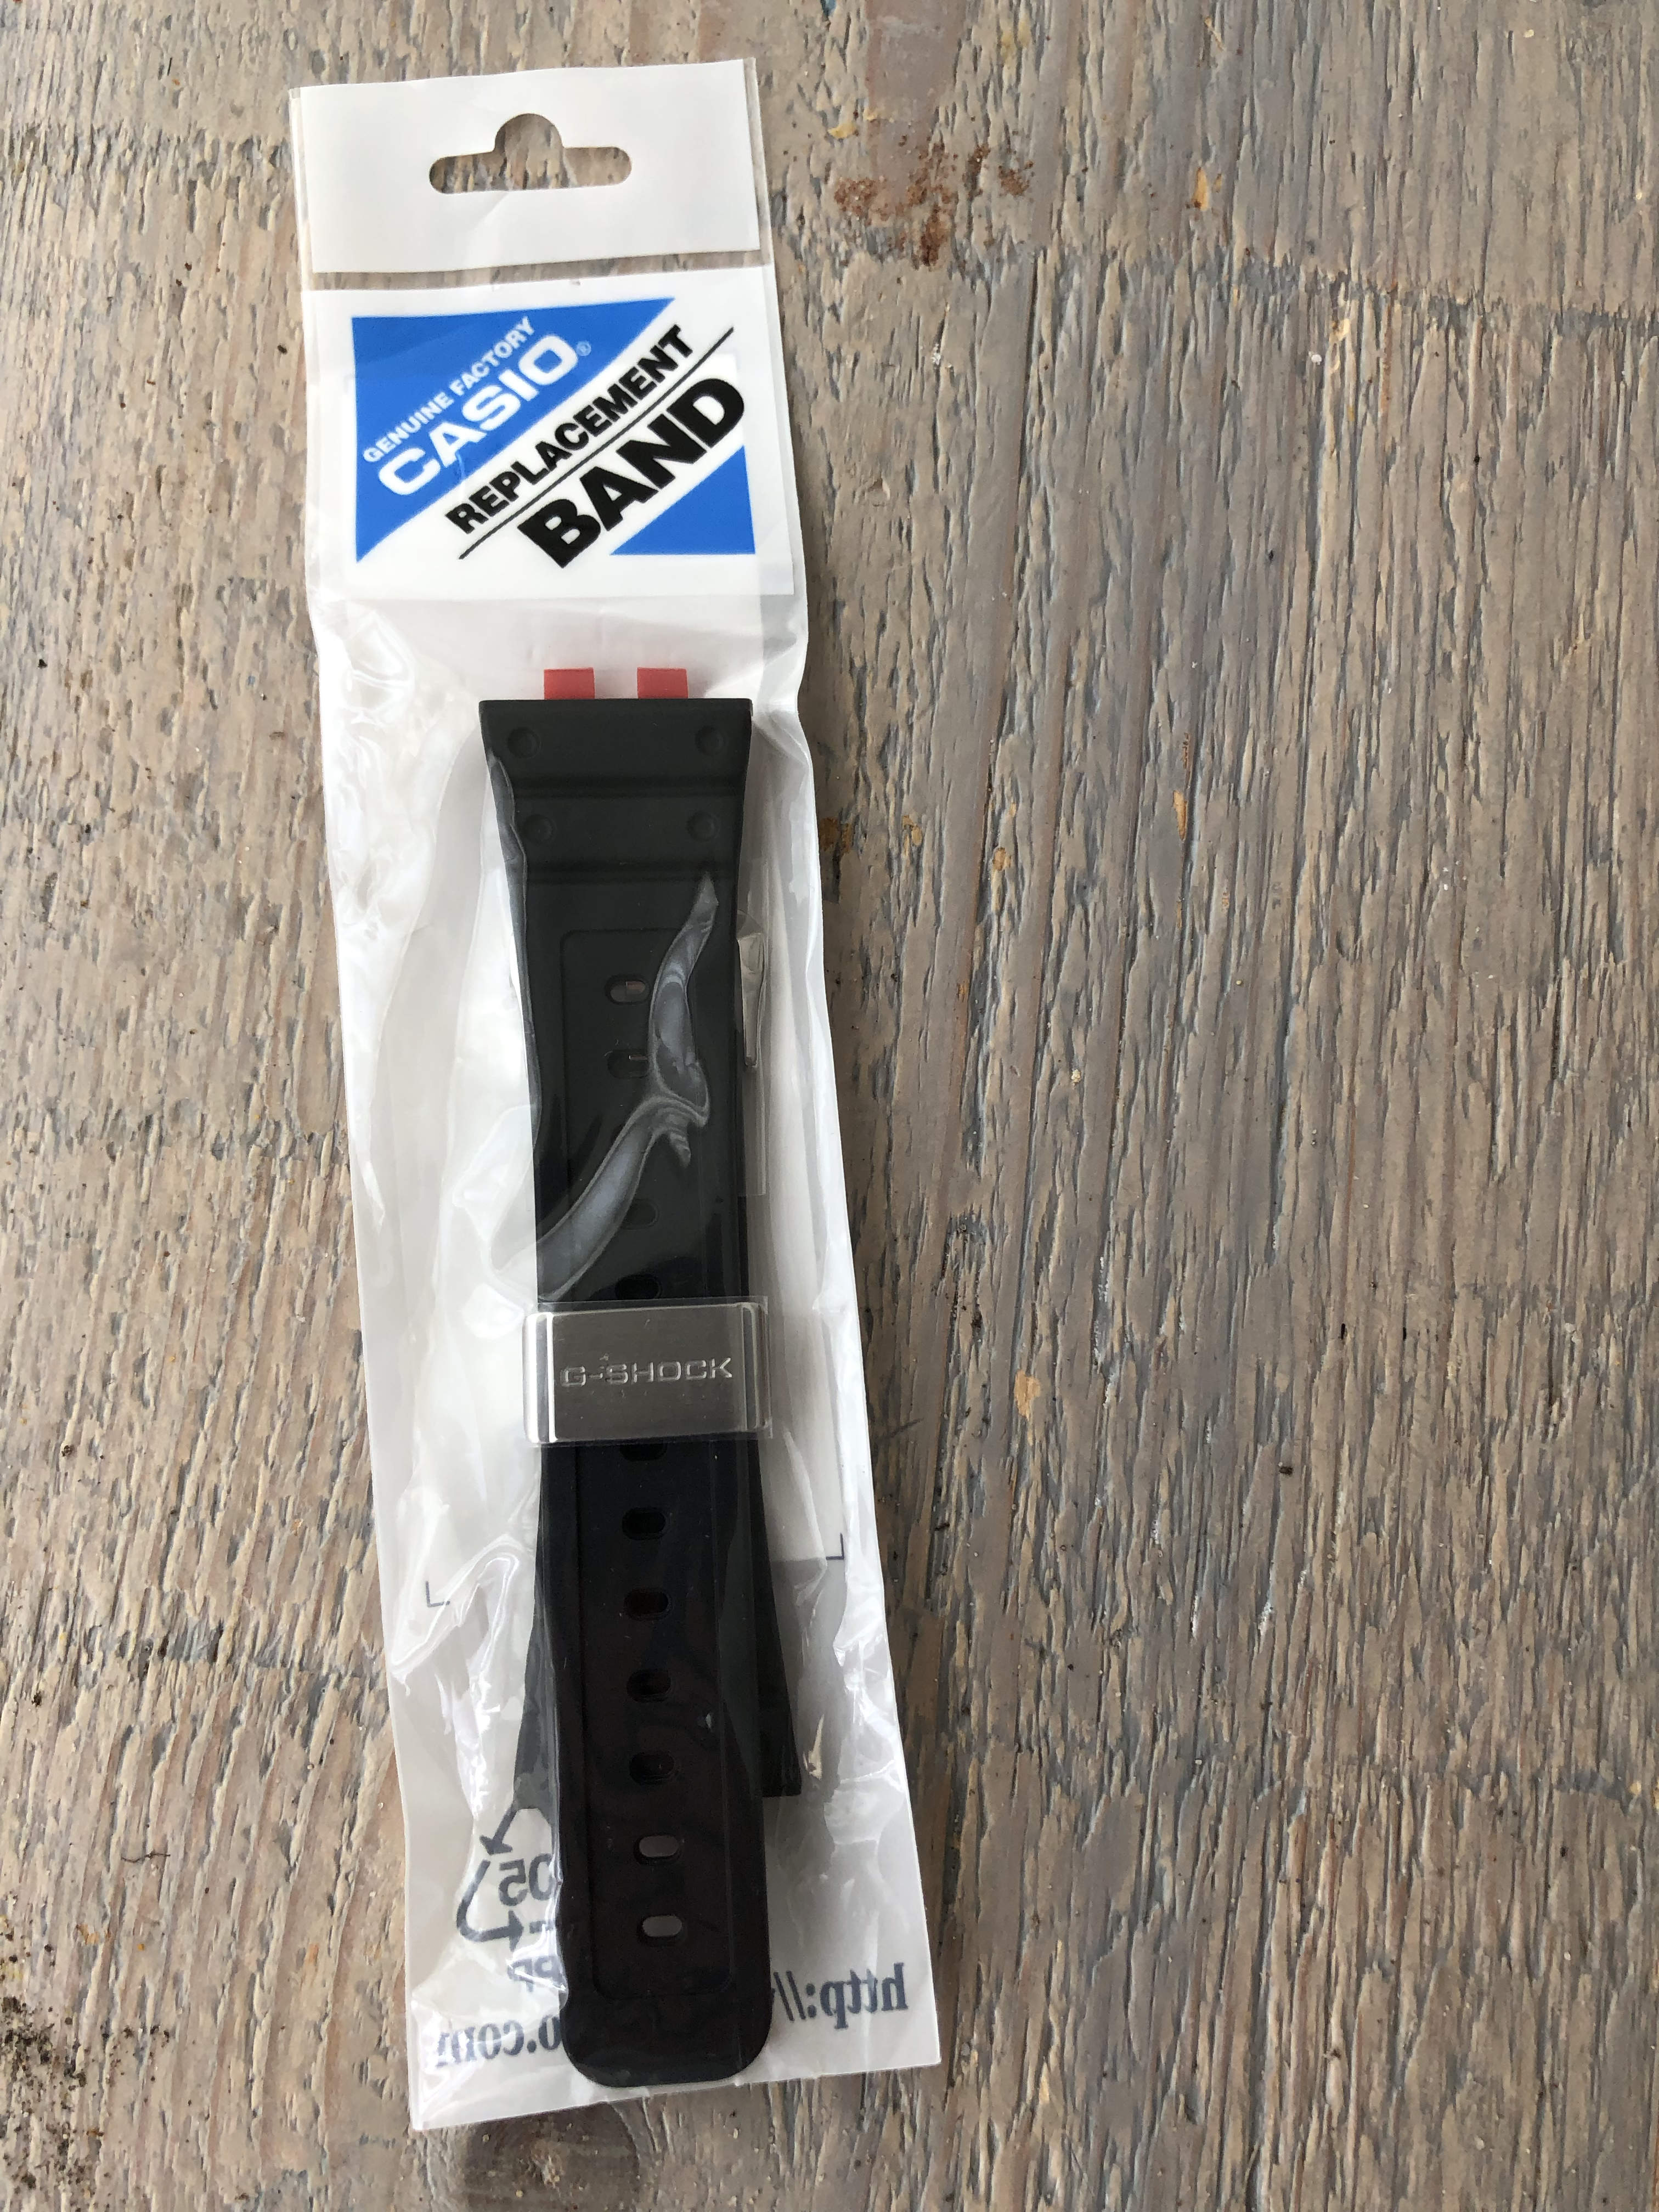 Casio G-Shock GWM-B5000 NOS Resin strap